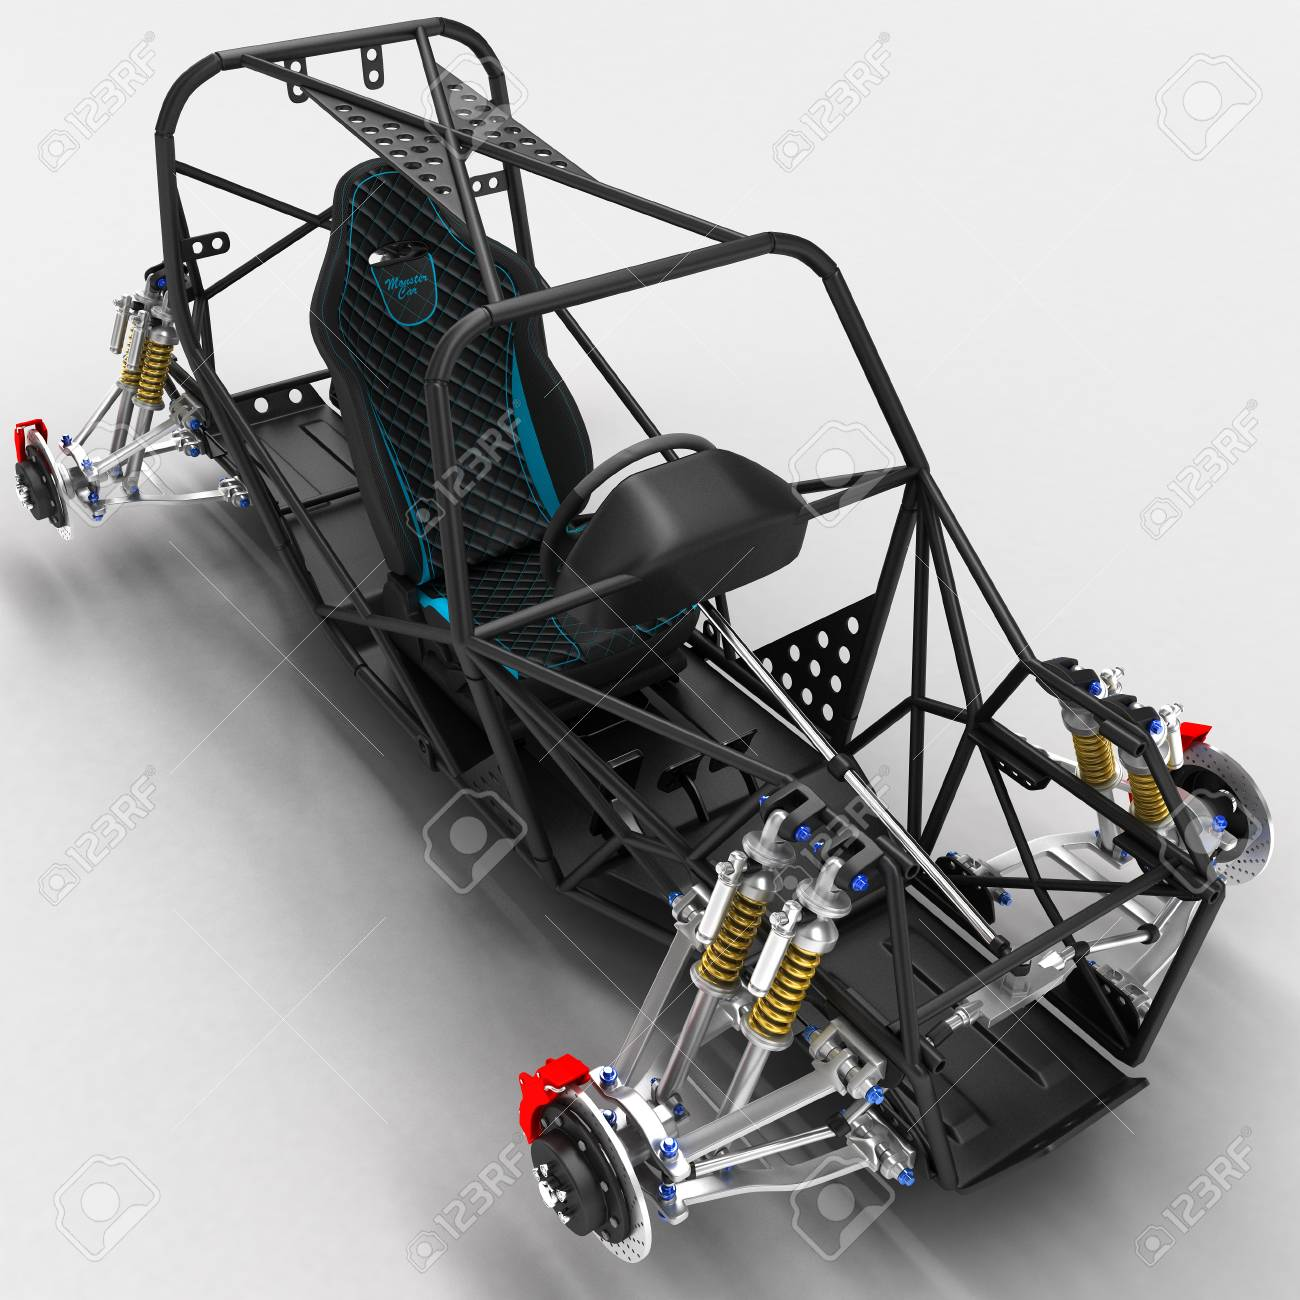 X2 Buggy Plans